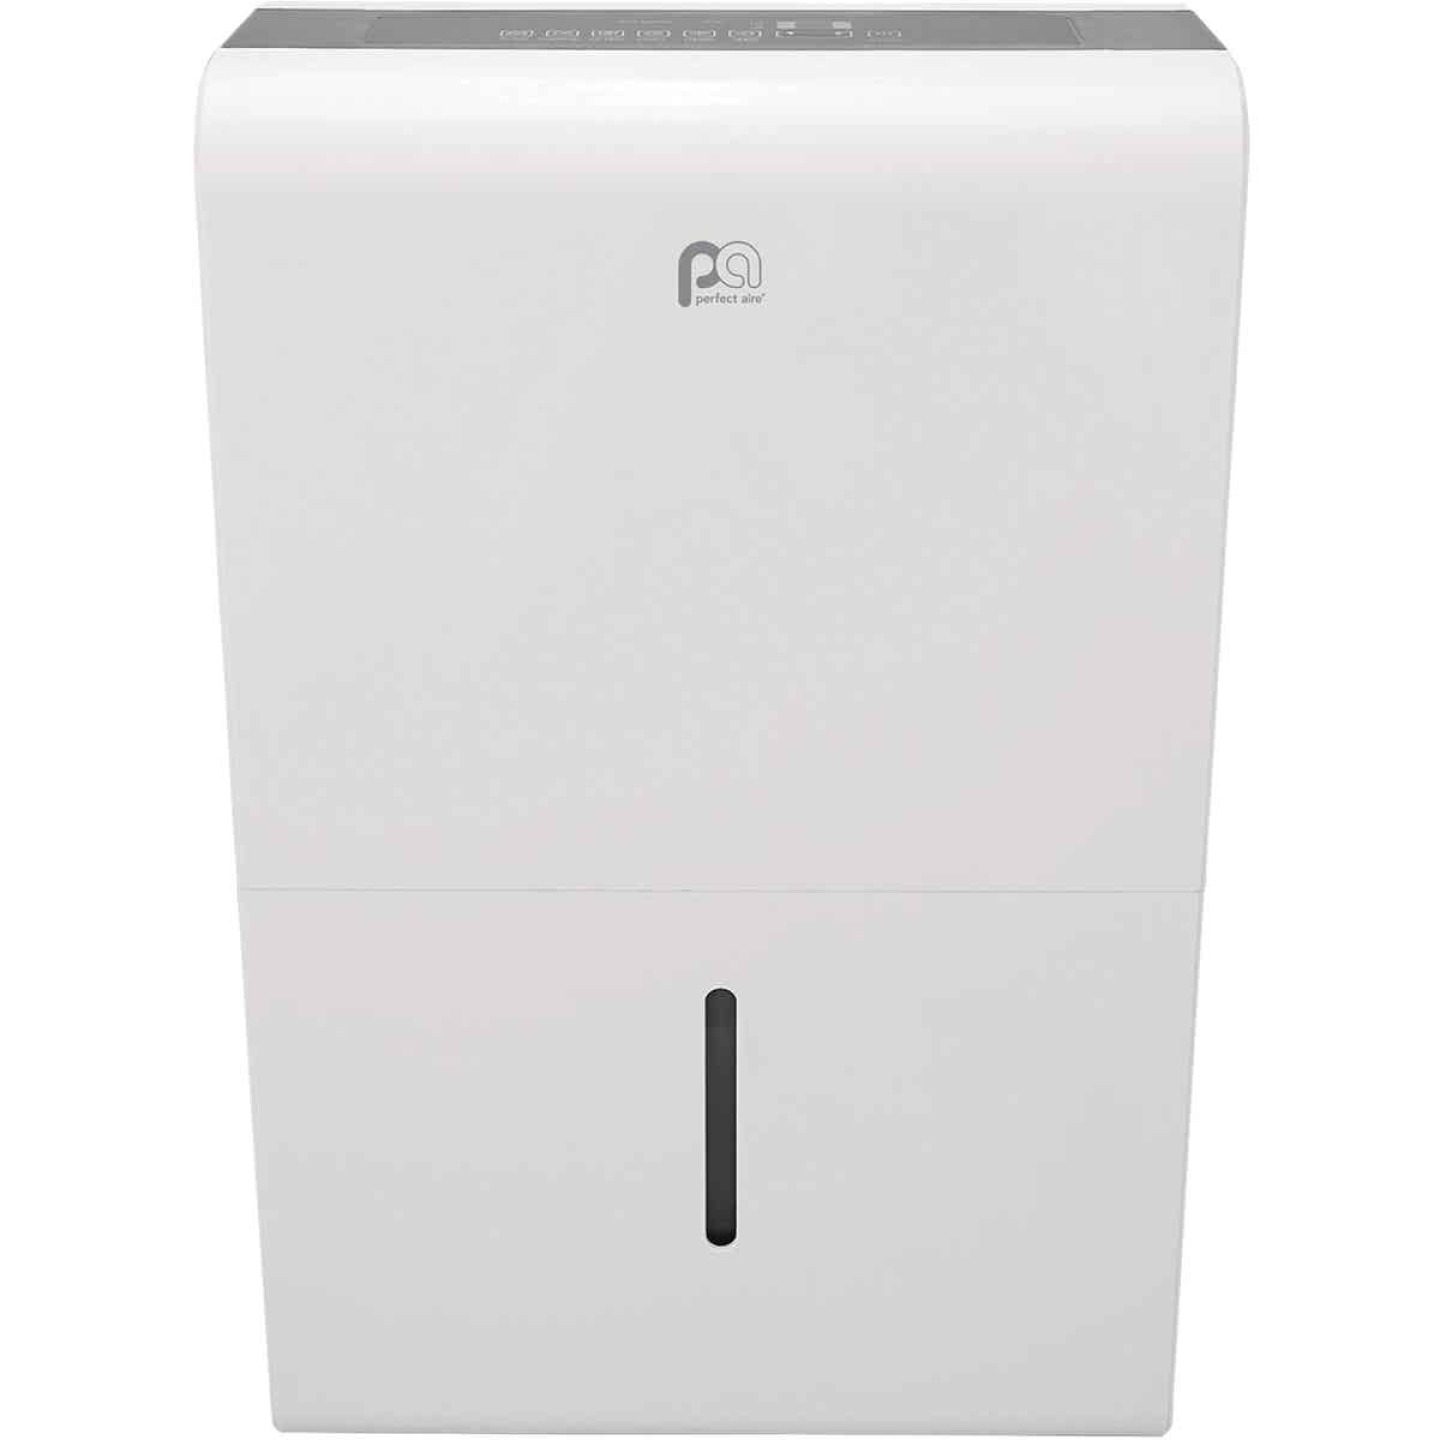 Perfect Aire 35 Pt./Day 592 Sq. Ft. Coverage 2-Speed Flat Panel Dehumidifier Image 2